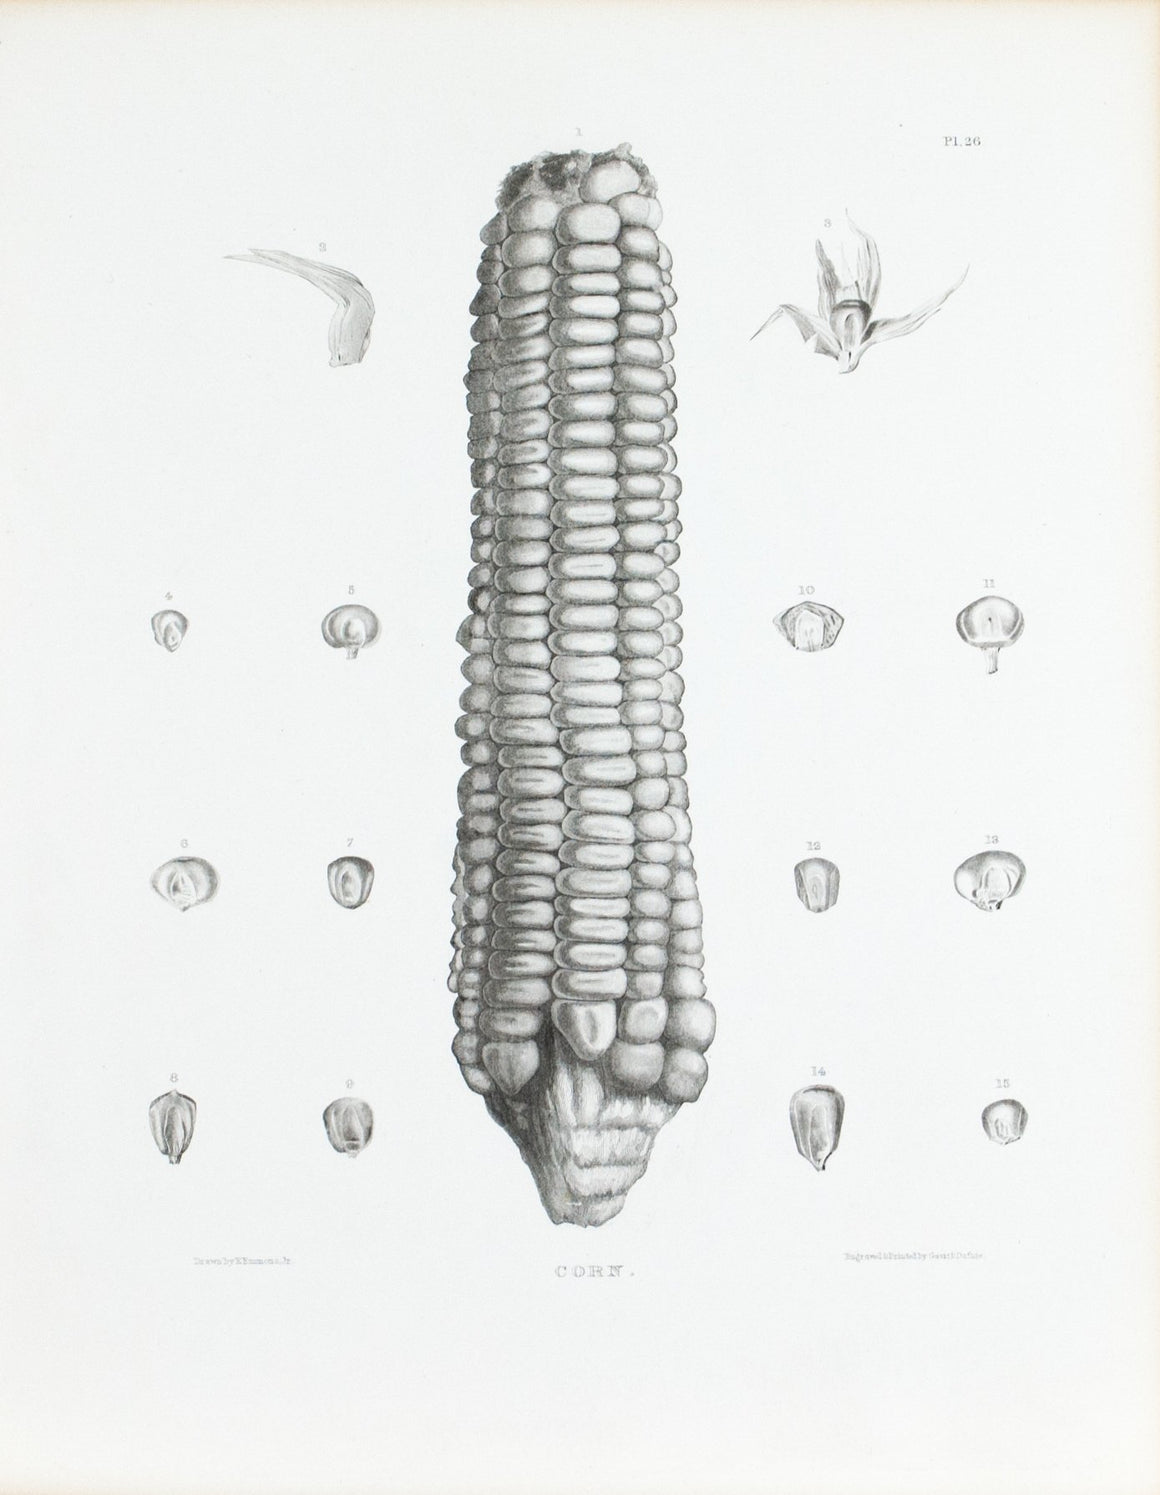 1849 Pl 26 Varieties of Maize - Emmons